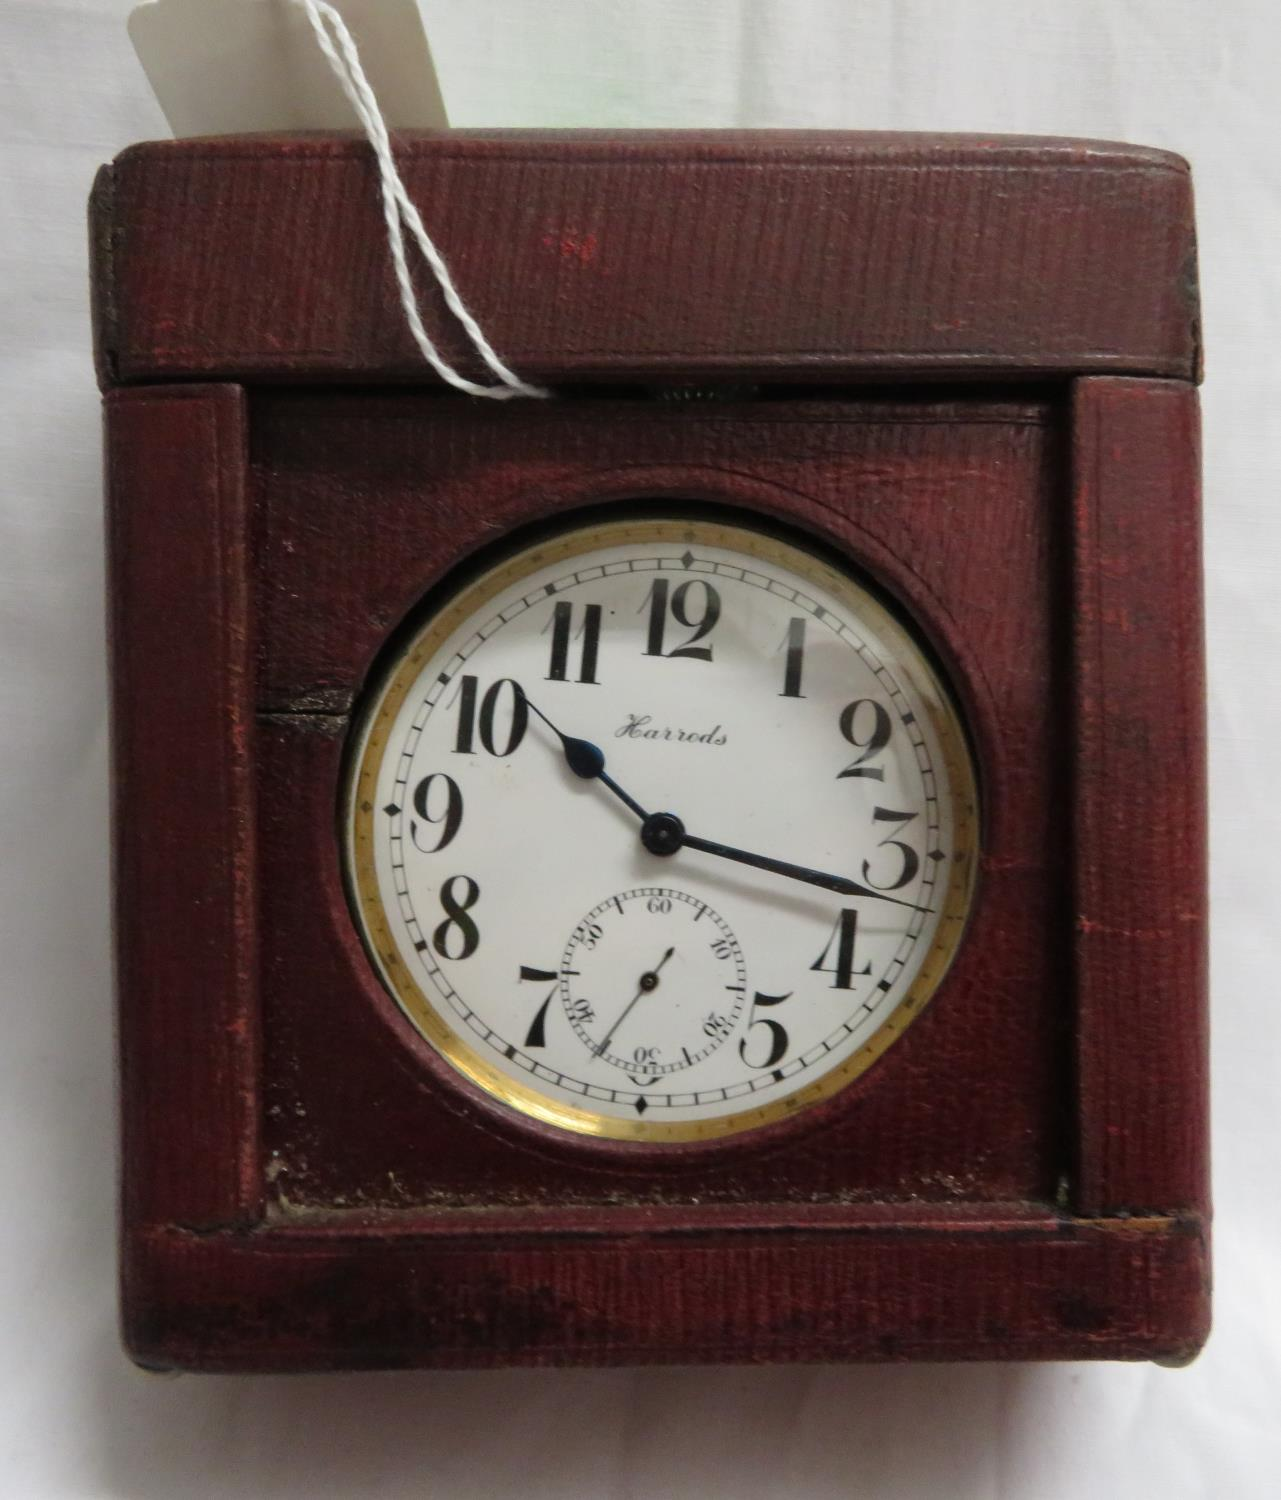 Lot 21 - Harrods Goliath pocket watch with carry case - fully working